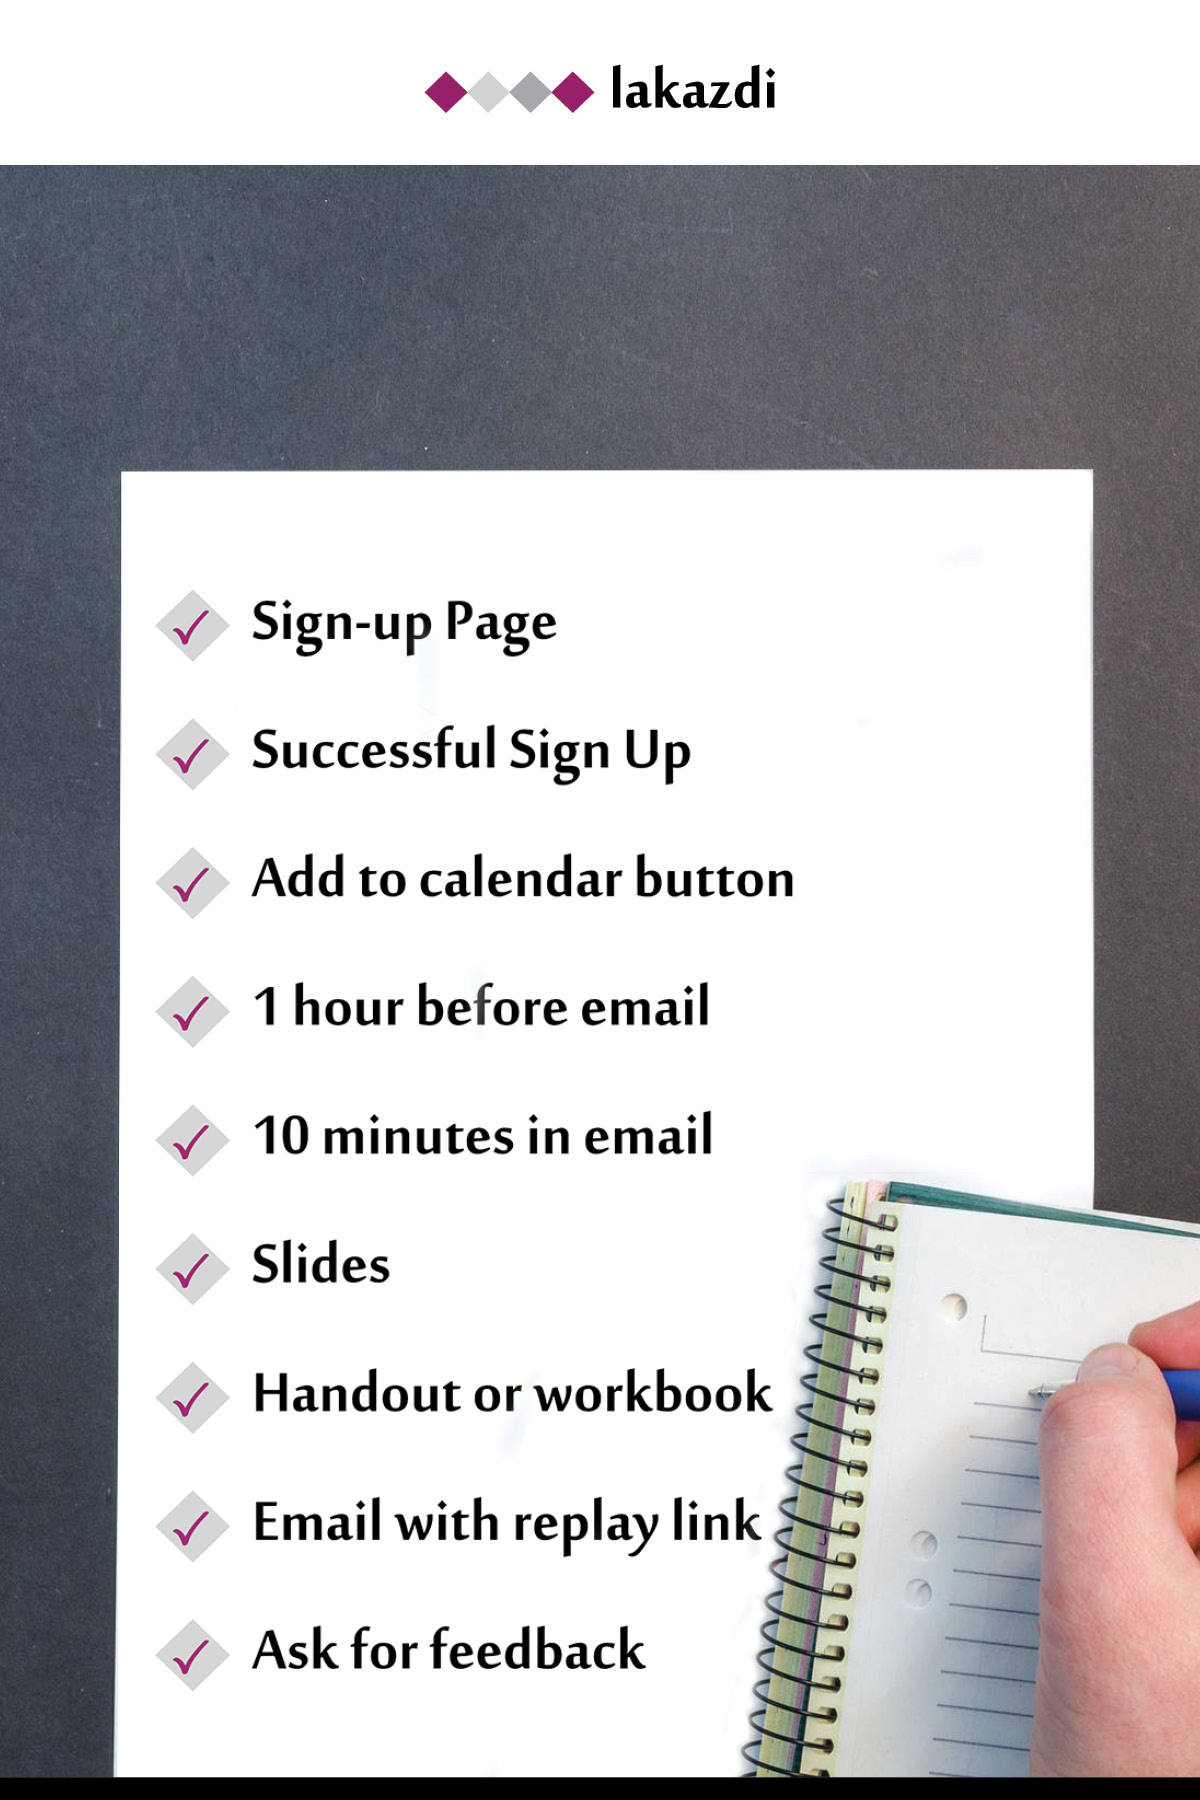 webinar checklist things to include to have a more successful webinar including getting a professional graphic designer to design your slides and handout or workbook